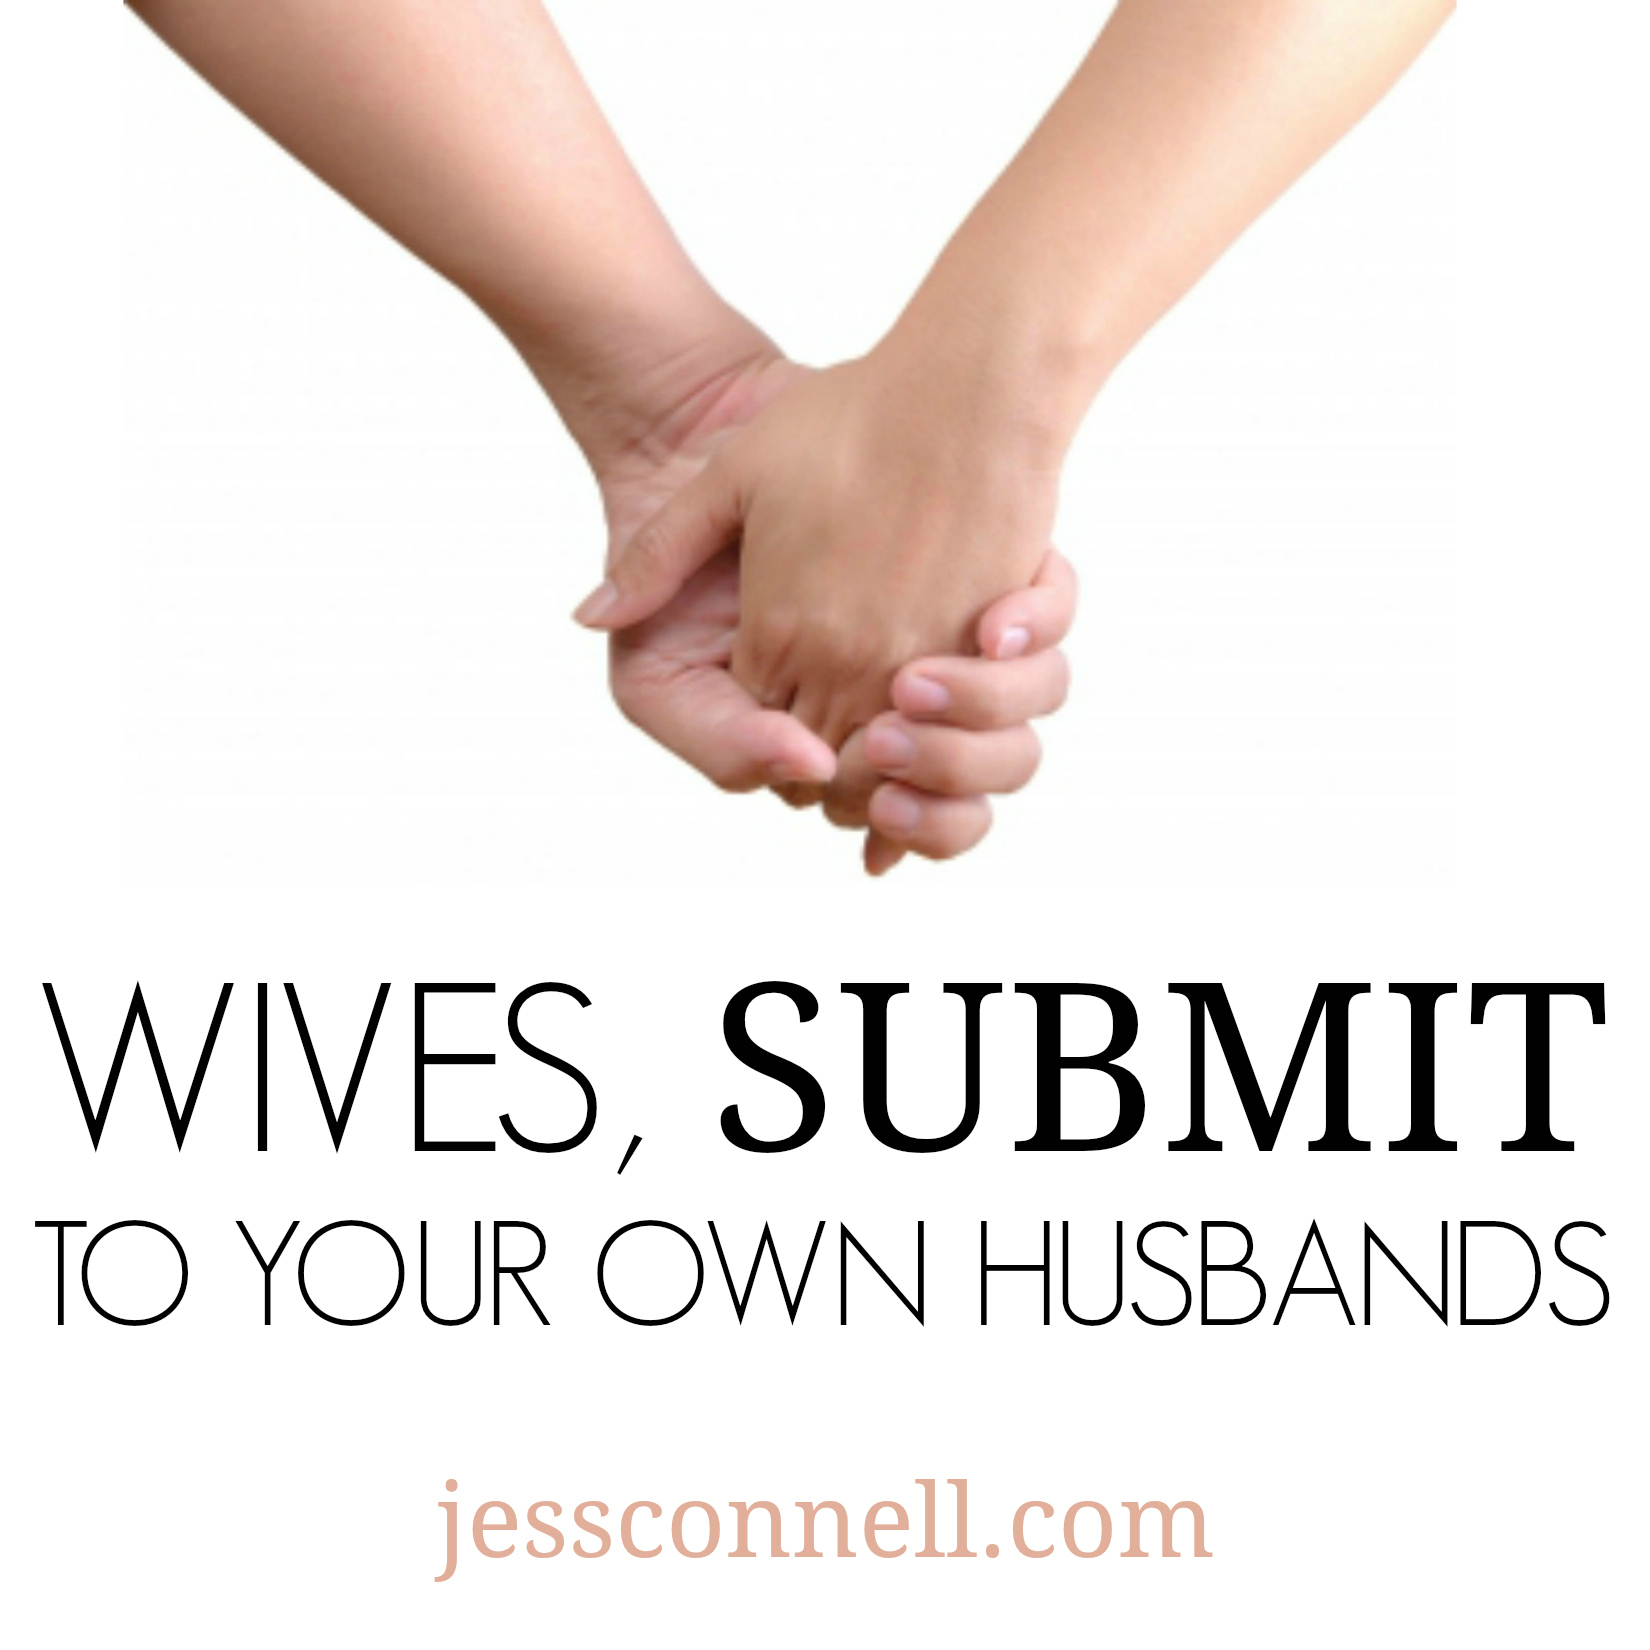 Wives, Submit To Your Own Husbands // jessconnell.com